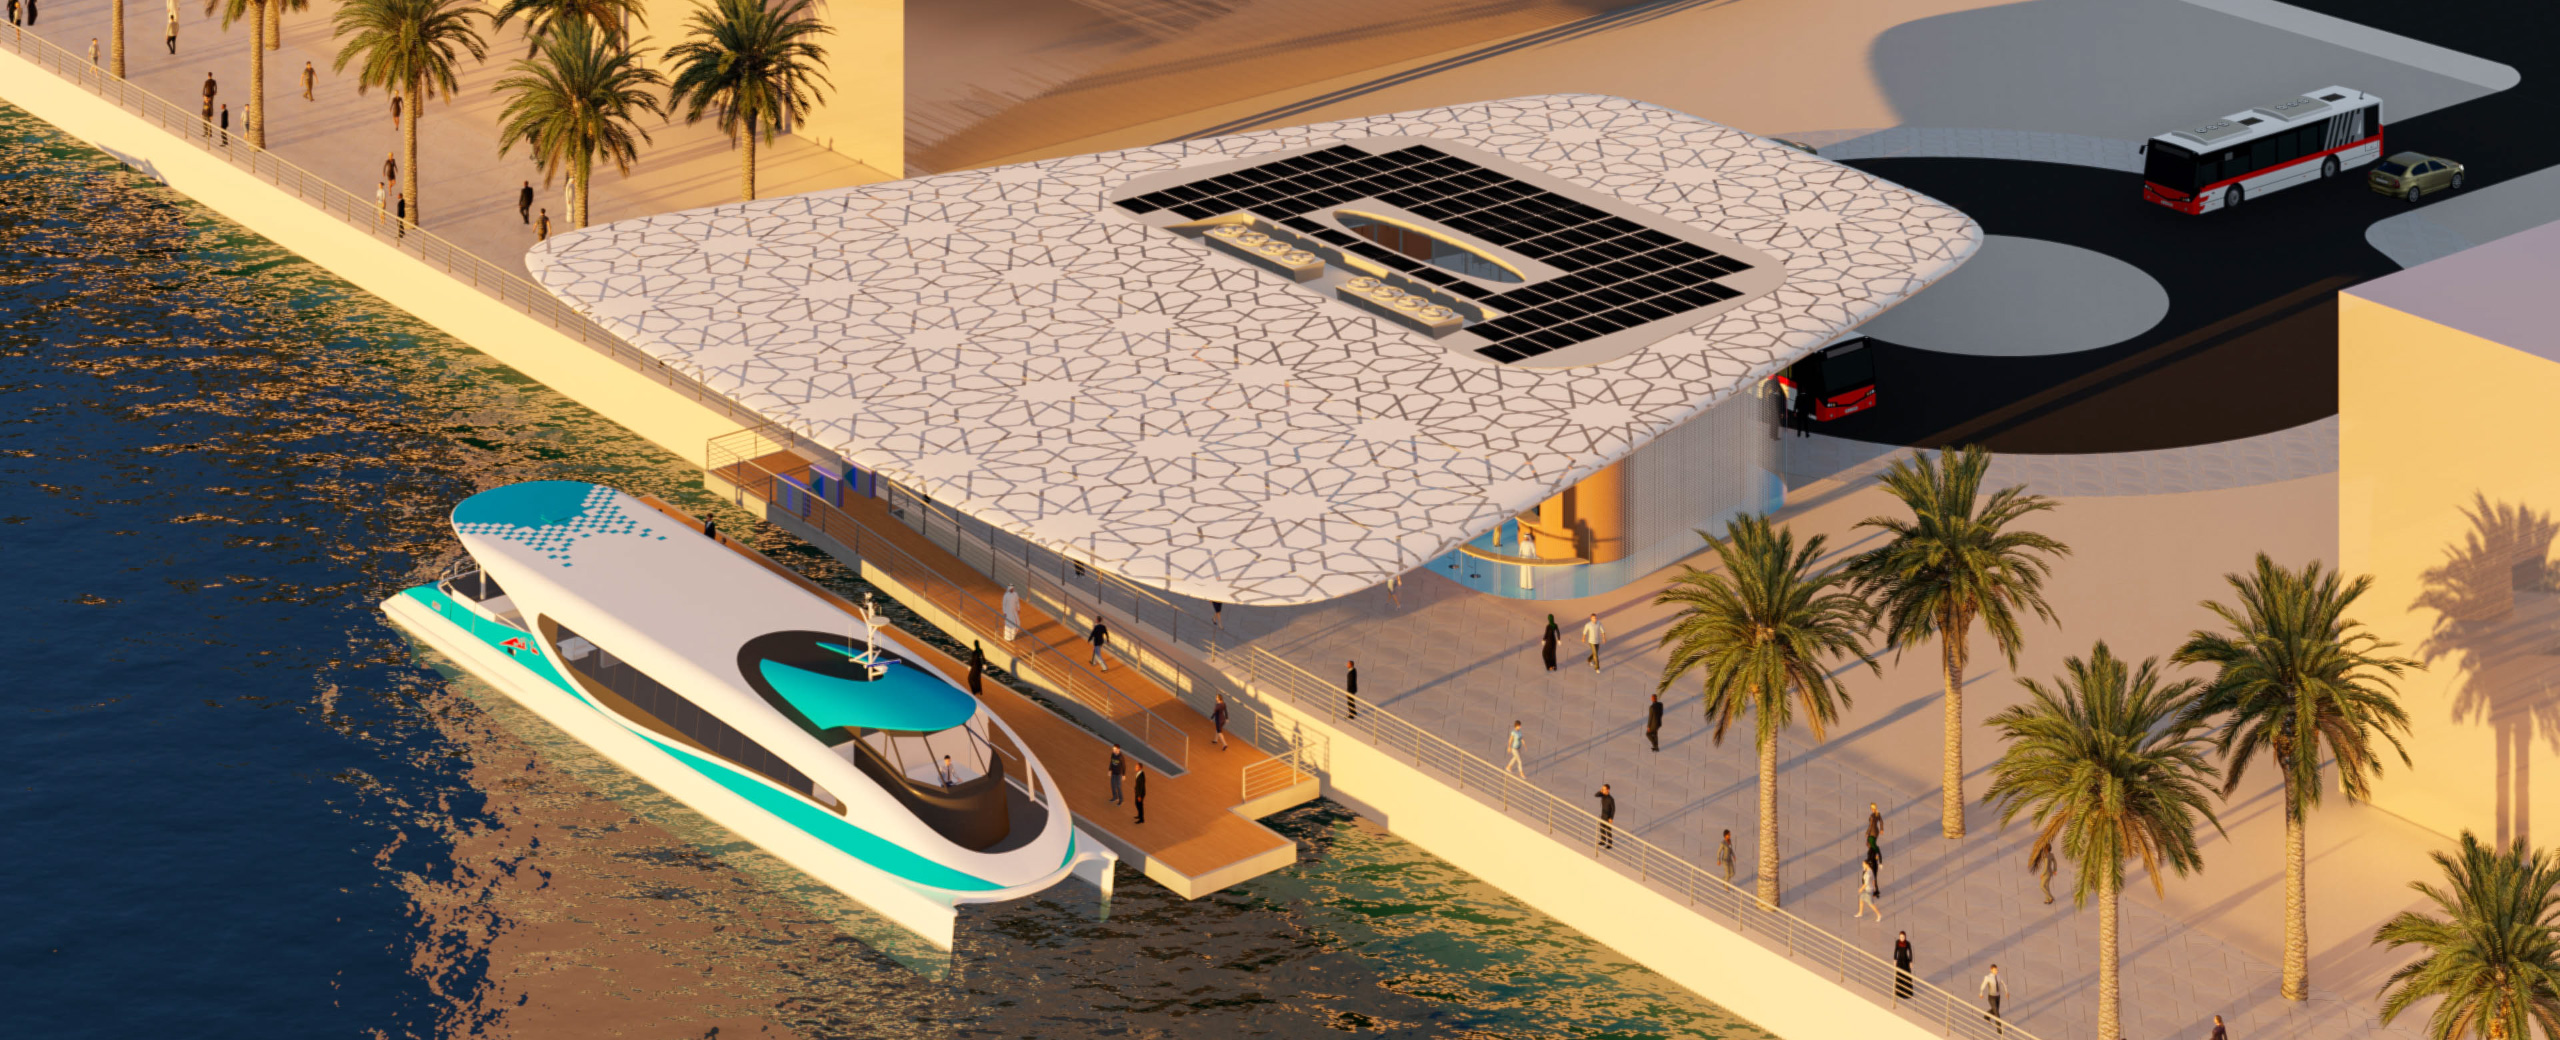 Watertransport stations Dubai